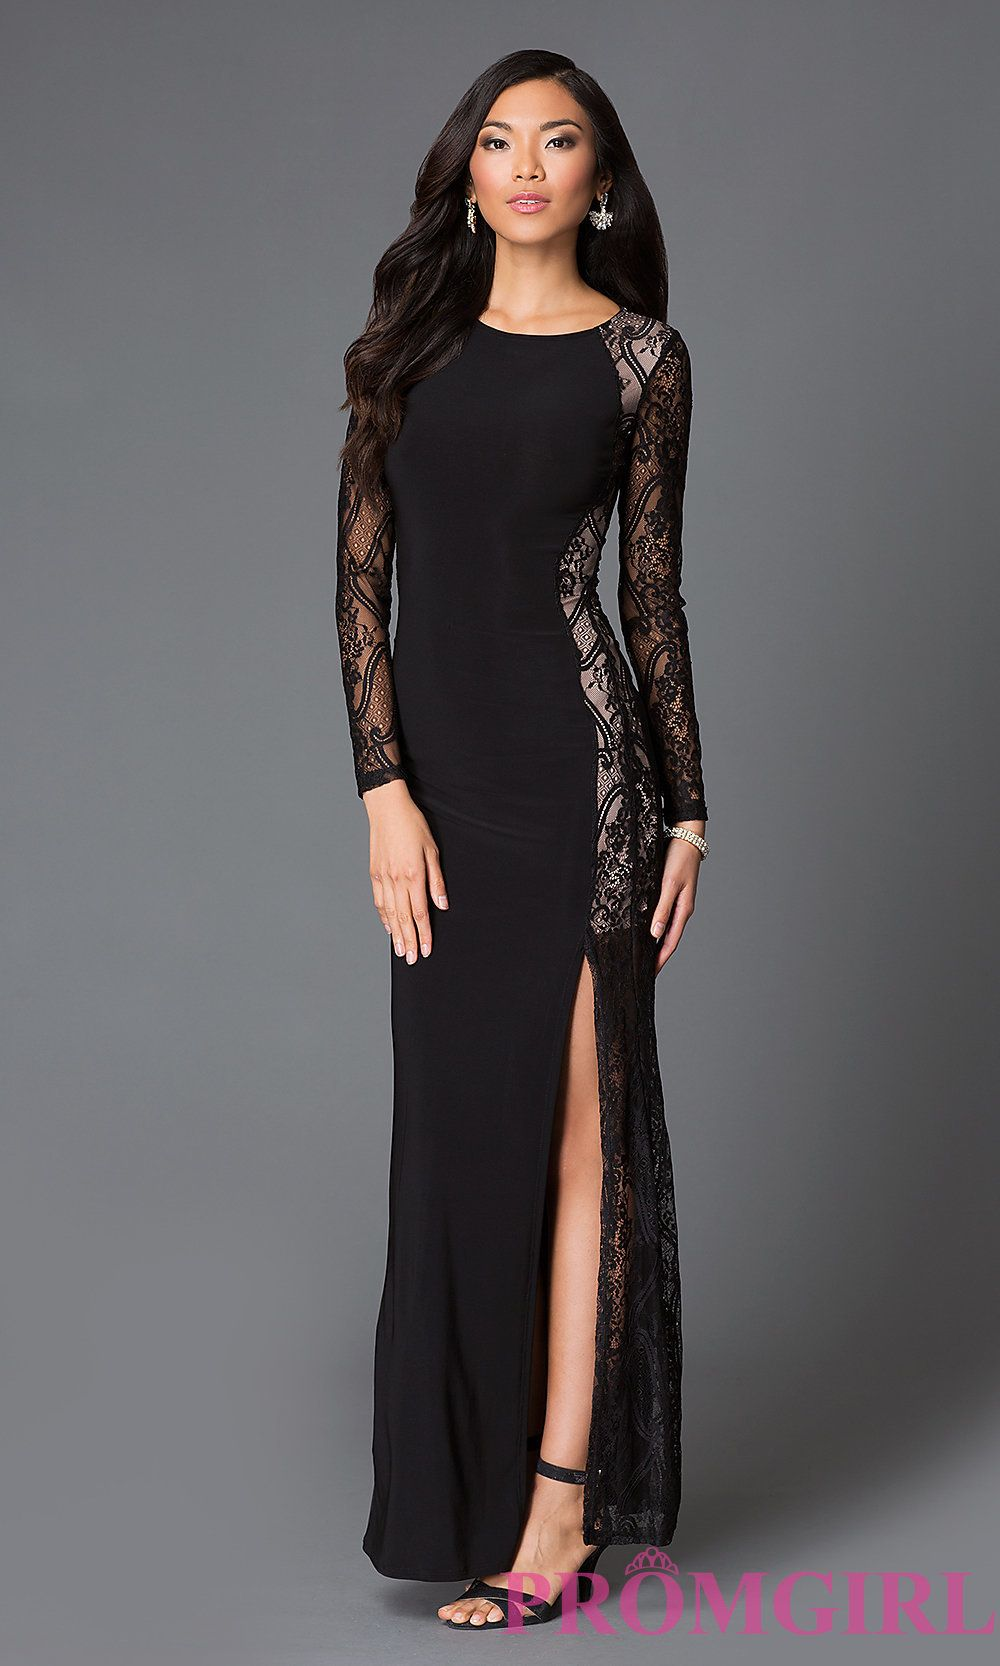 Long sleeve black dress prom